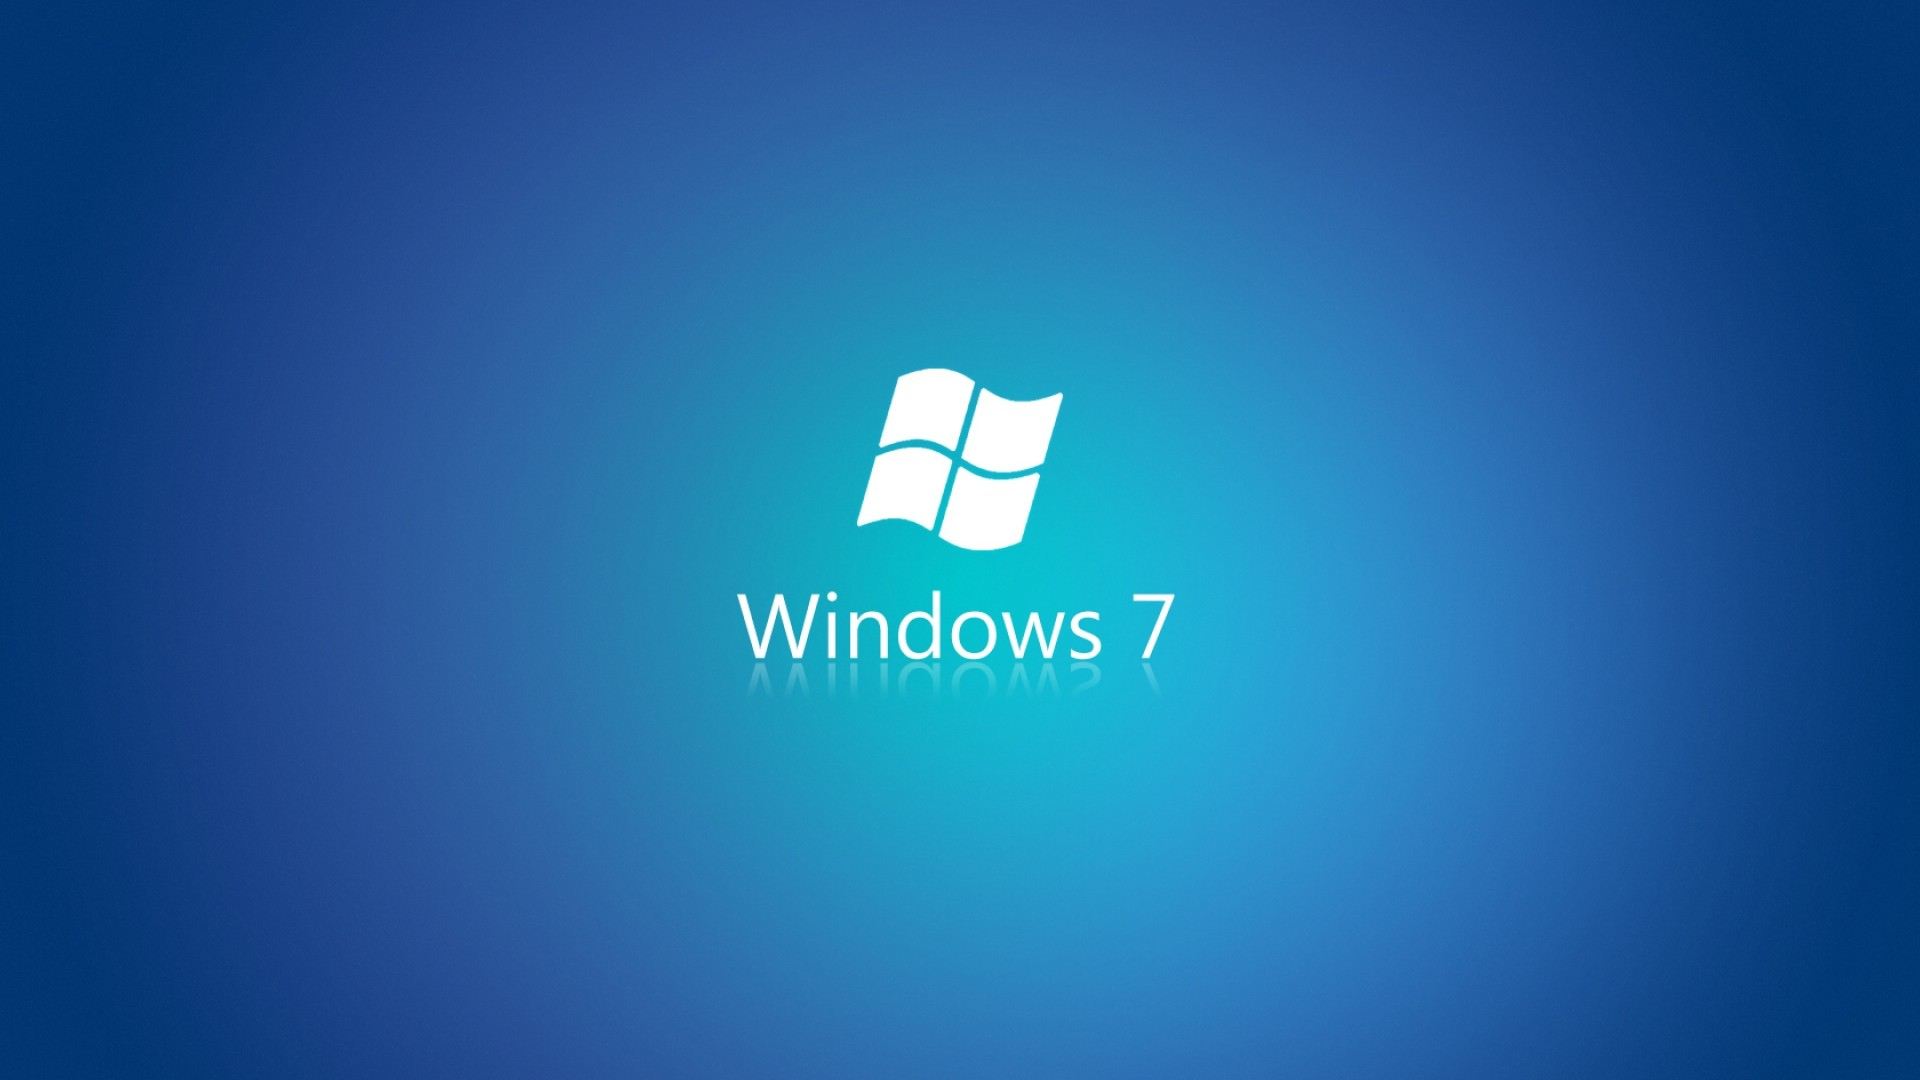 Window 7 Wallpapers High Resolution with High Definition Wallpaper  px 844.15 KB Logo 3d View